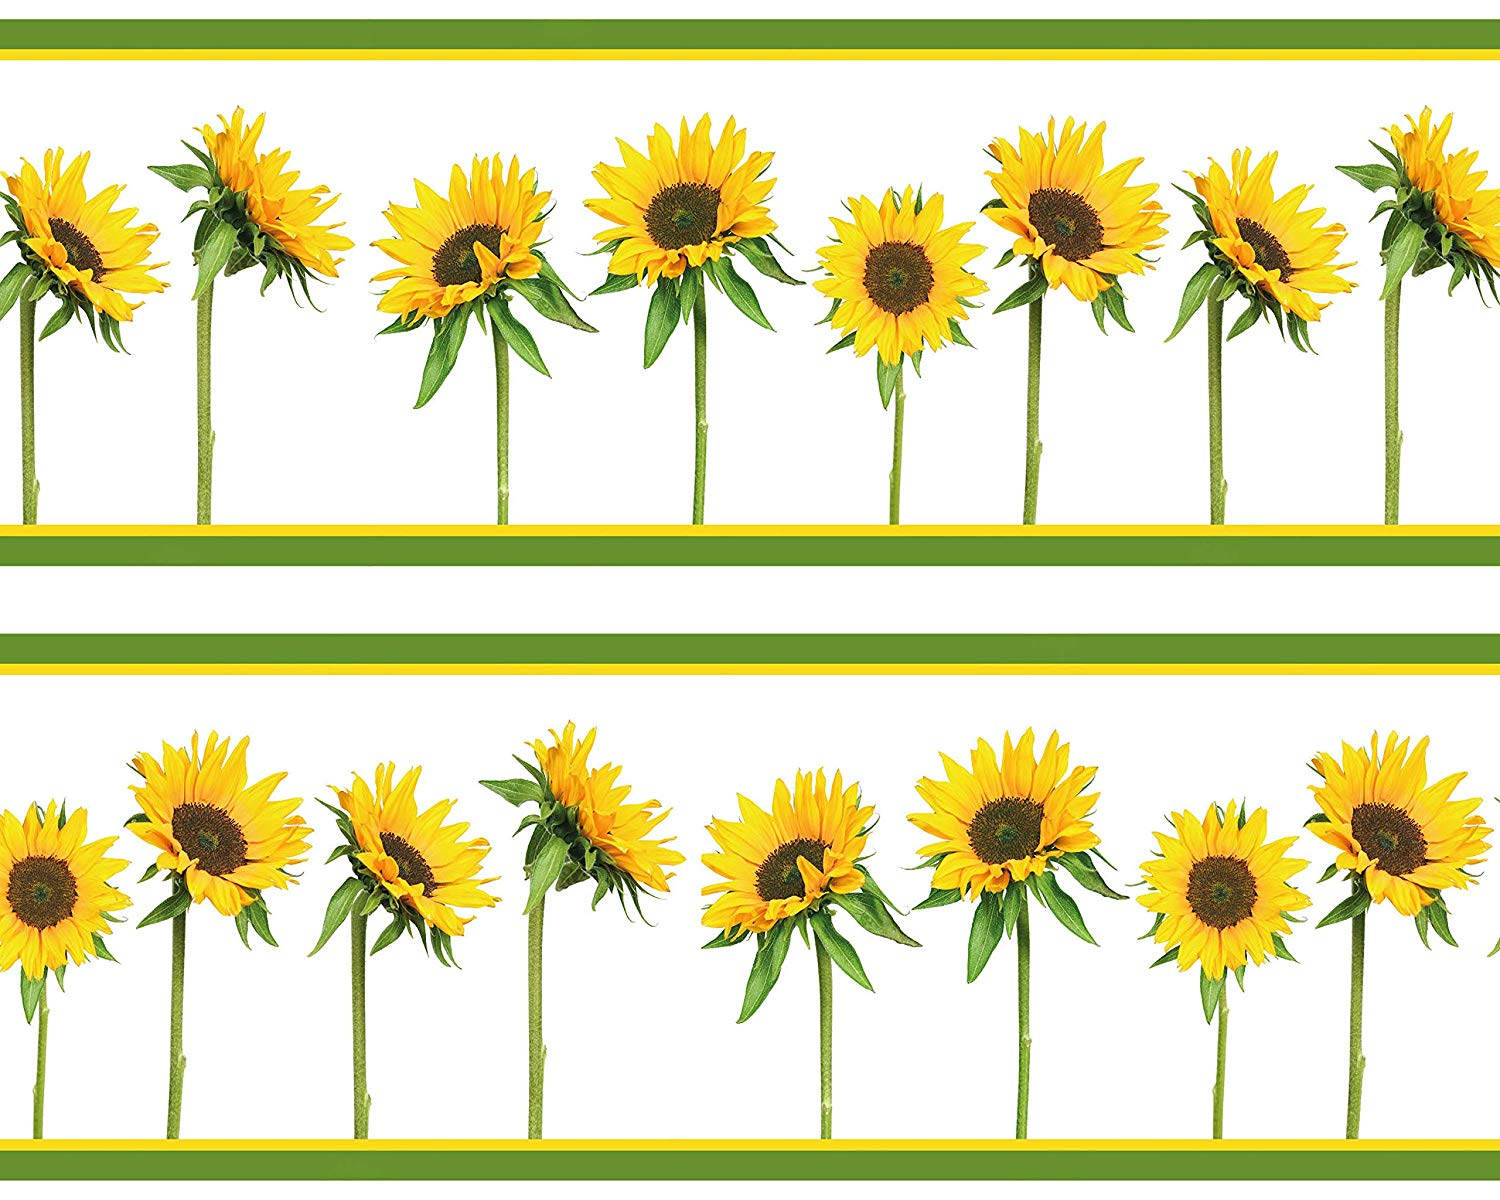 Sunflowers Adhesive Wall Border 4 Pieces 520 X 15 Sunflower